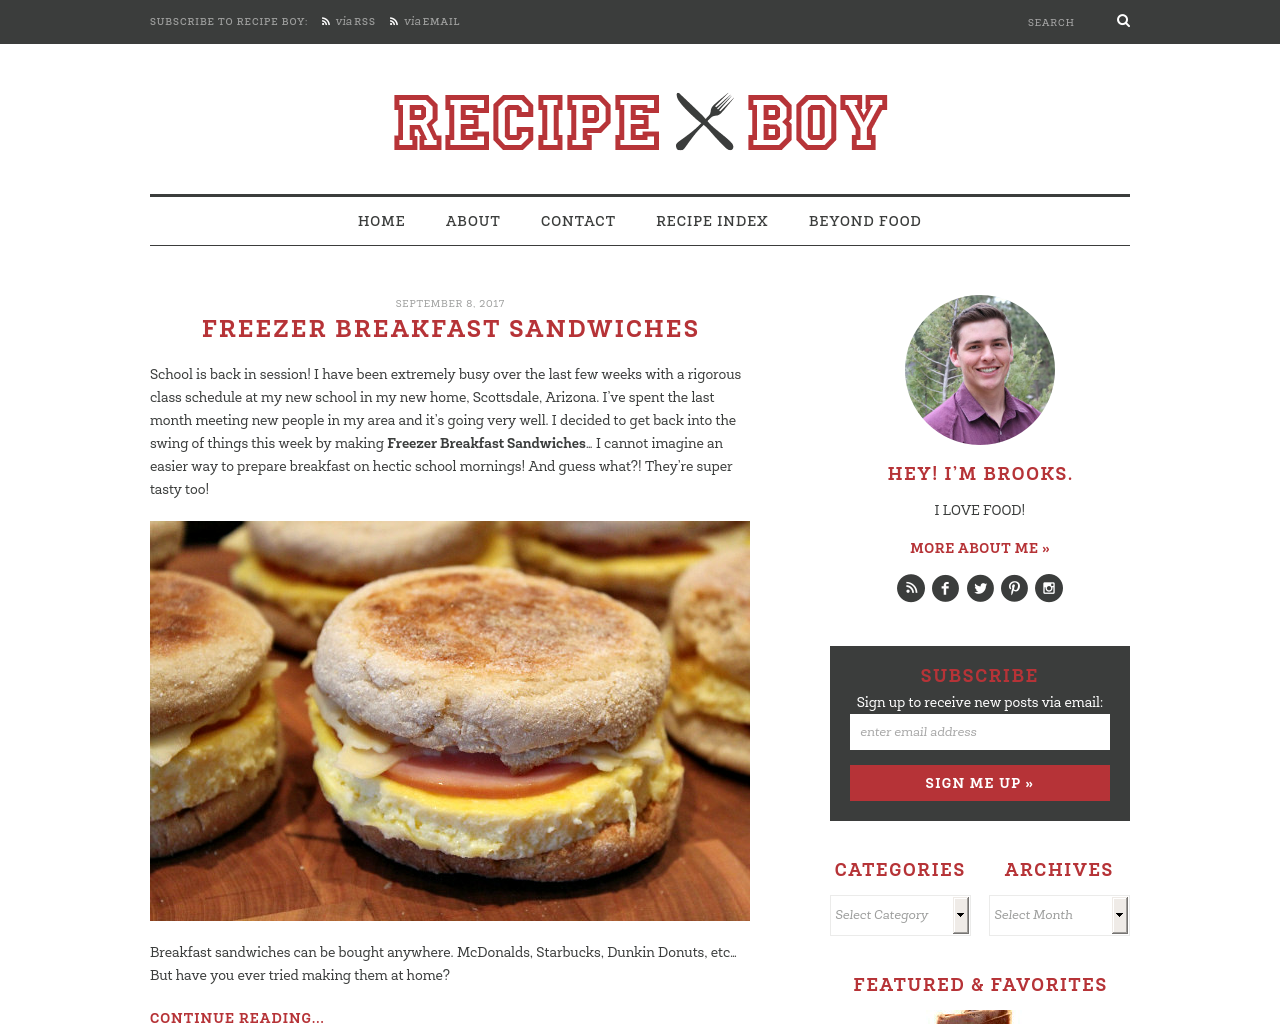 RECIPE-BOY-Advertising-Reviews-Pricing